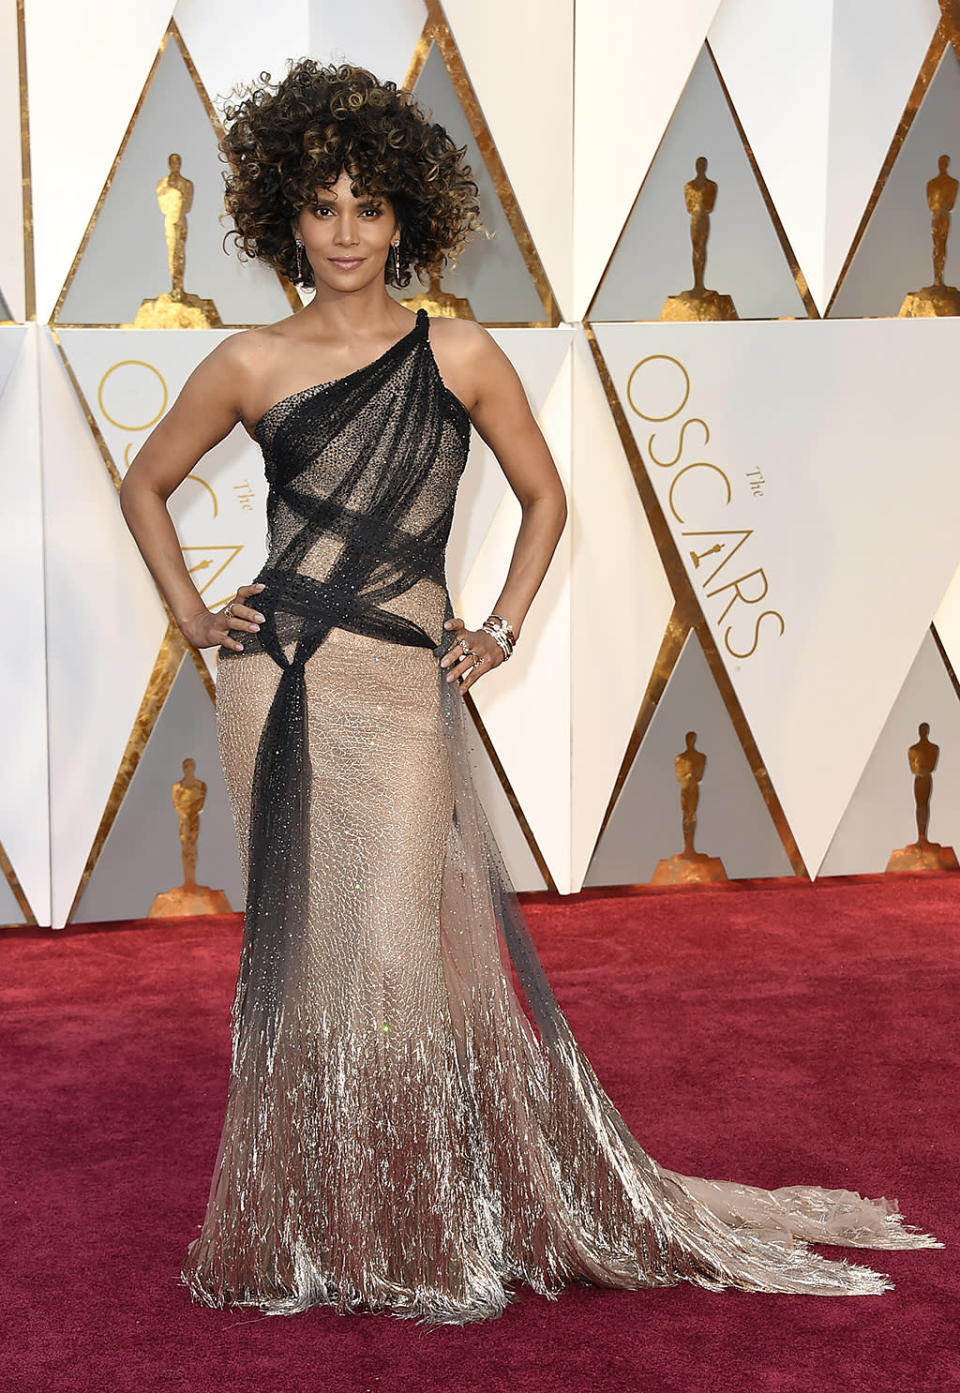 """<p>While Halle Berry's hairdo blew up Twitter, her Versace gown was also something special. She told E!, """"It's romantic and feminine and makes me feel good."""" Us, too!<br> (Photo by Jordan Strauss/Invision/AP)<br><br><a href=""""https://www.yahoo.com/style/oscars-2017-vote-for-the-best-and-worst-dressed-225105125.html"""" data-ylk=""""slk:Go here to vote for best and worst dressed.;outcm:mb_qualified_link;_E:mb_qualified_link;ct:story;"""" class=""""link rapid-noclick-resp yahoo-link"""">Go here to vote for best and worst dressed.</a> </p>"""